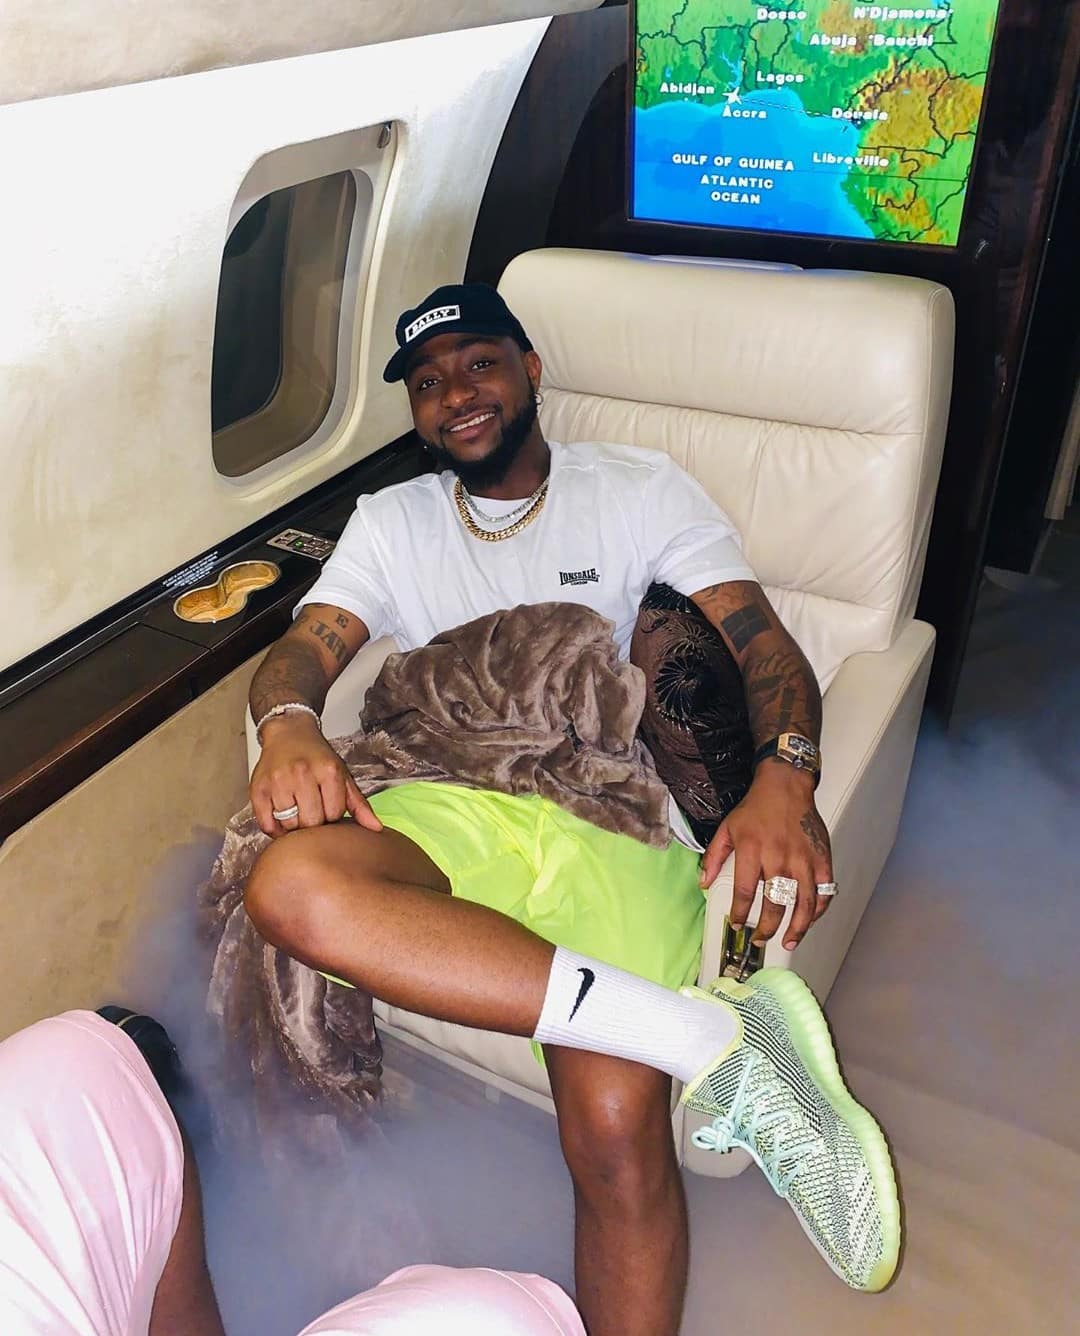 Davido shows off as he steps on Nigerian currency (Photo) 1